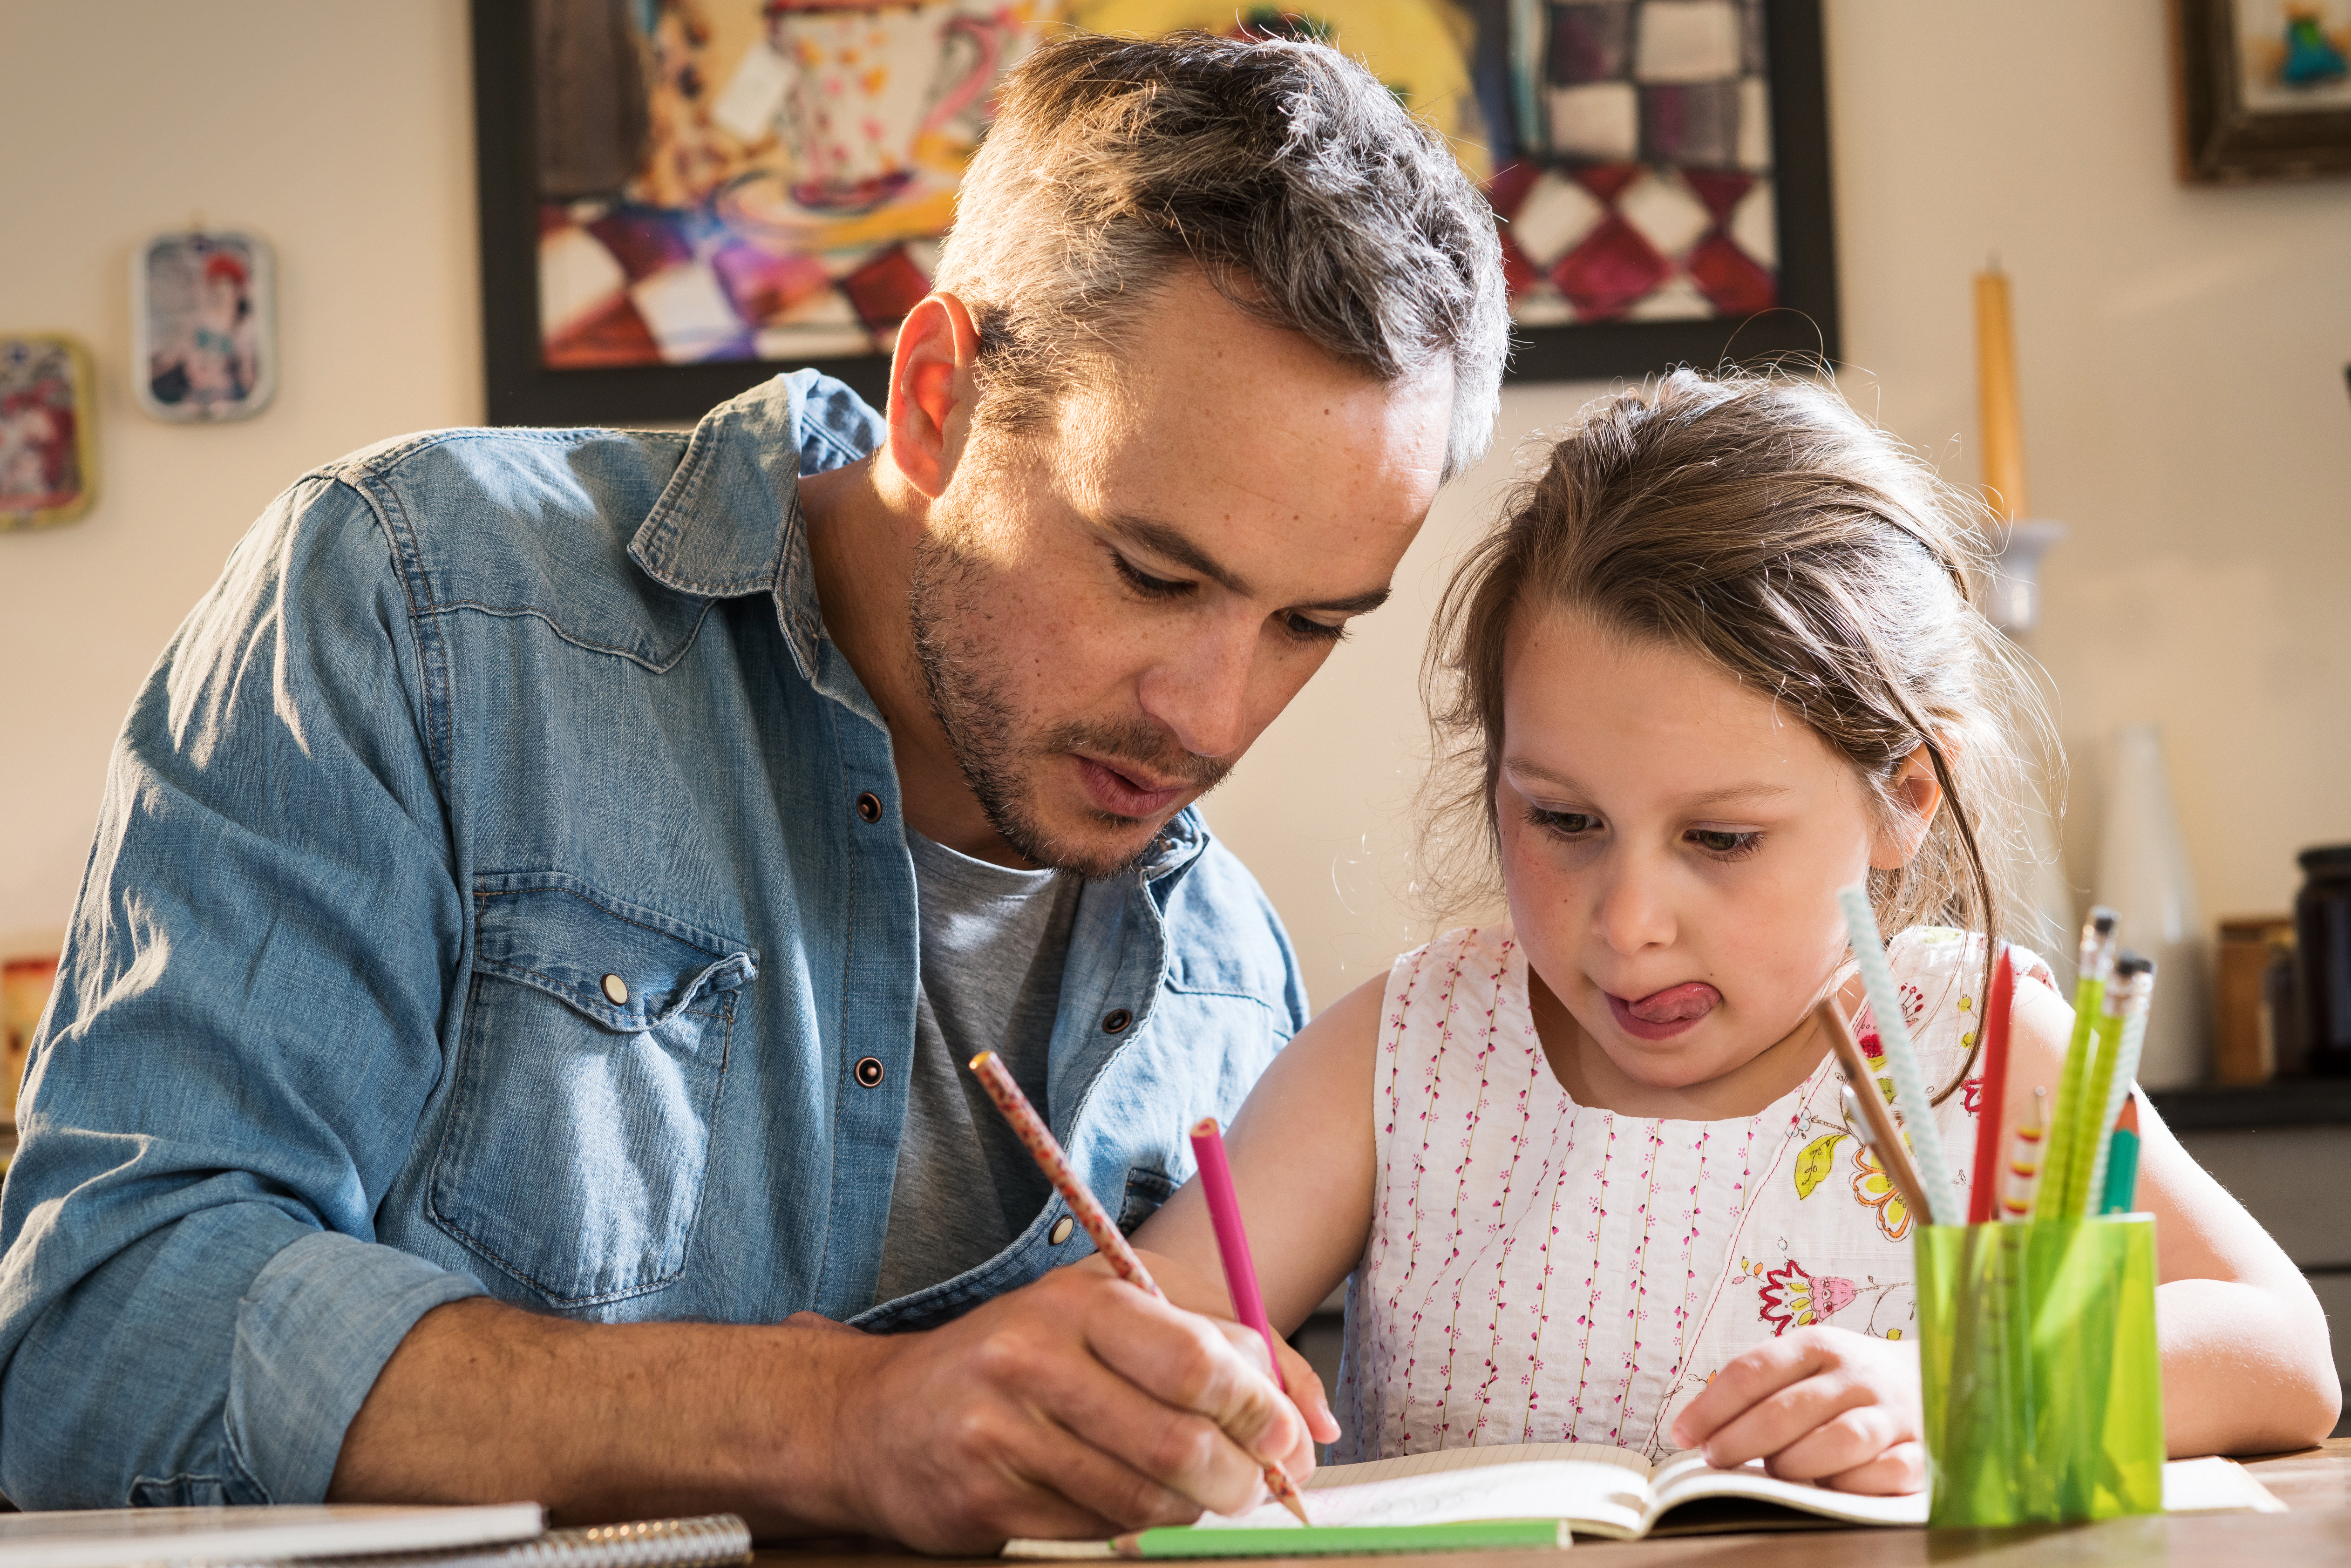 Pictured is a father and his daughter working on homework. SHUTTERSTOCK/ Jack Frog